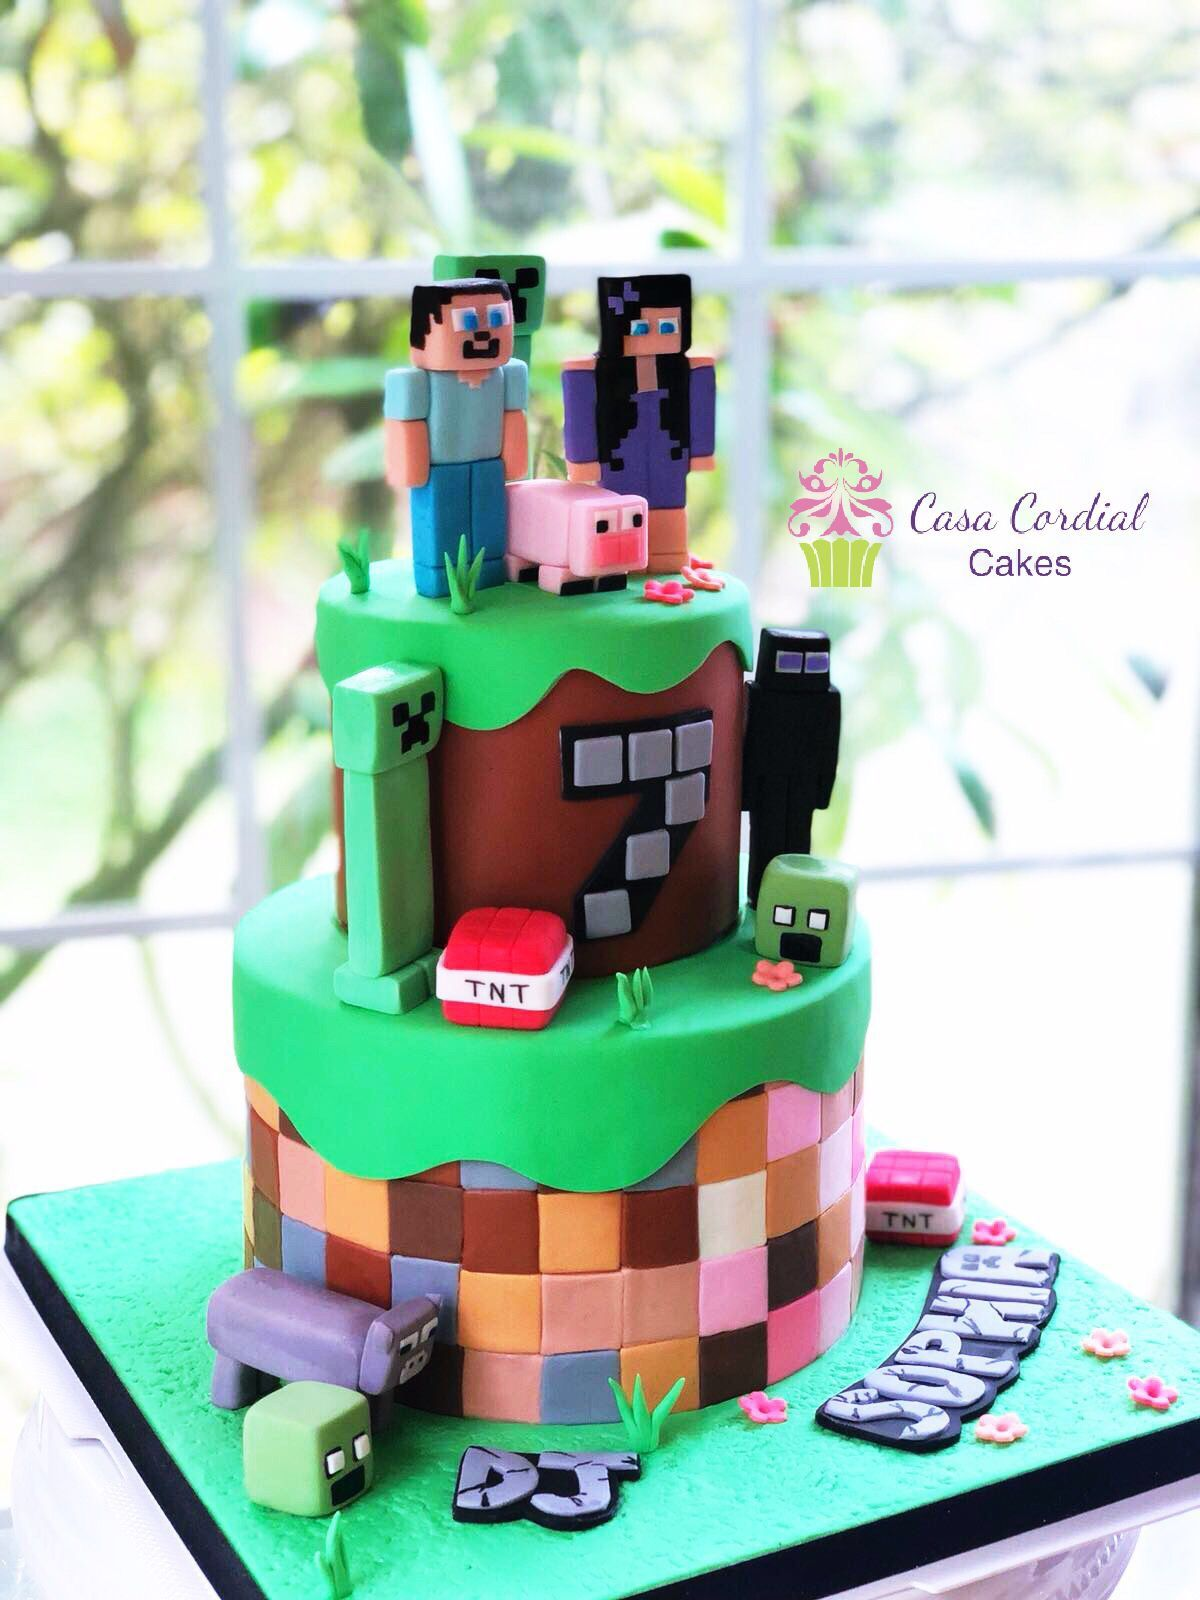 Pin On Casa Cordial Cakes Creations